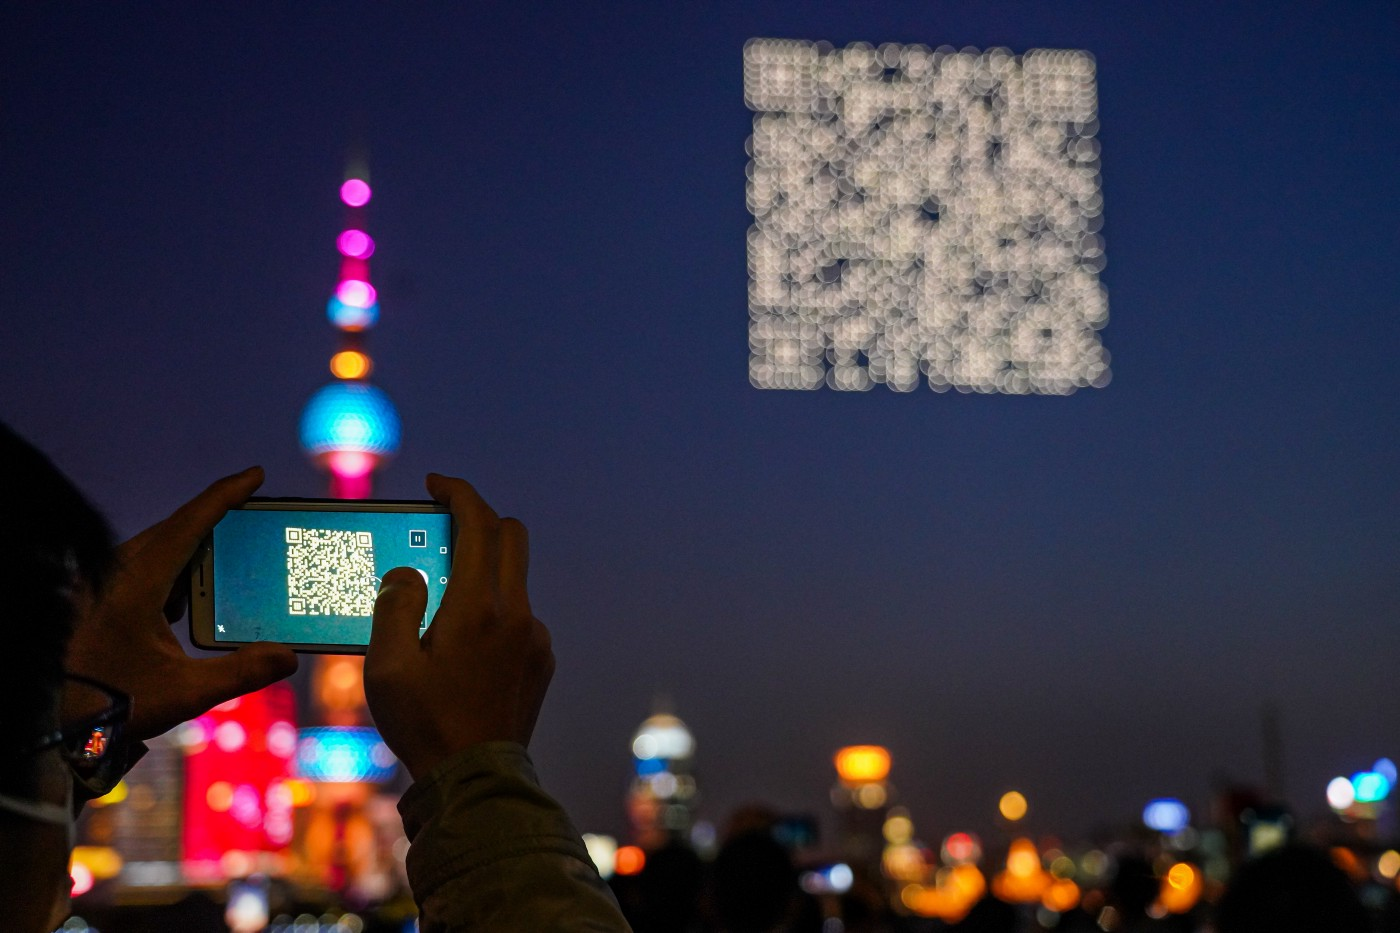 QR code in the Shanghai sky created by 1,500 drones